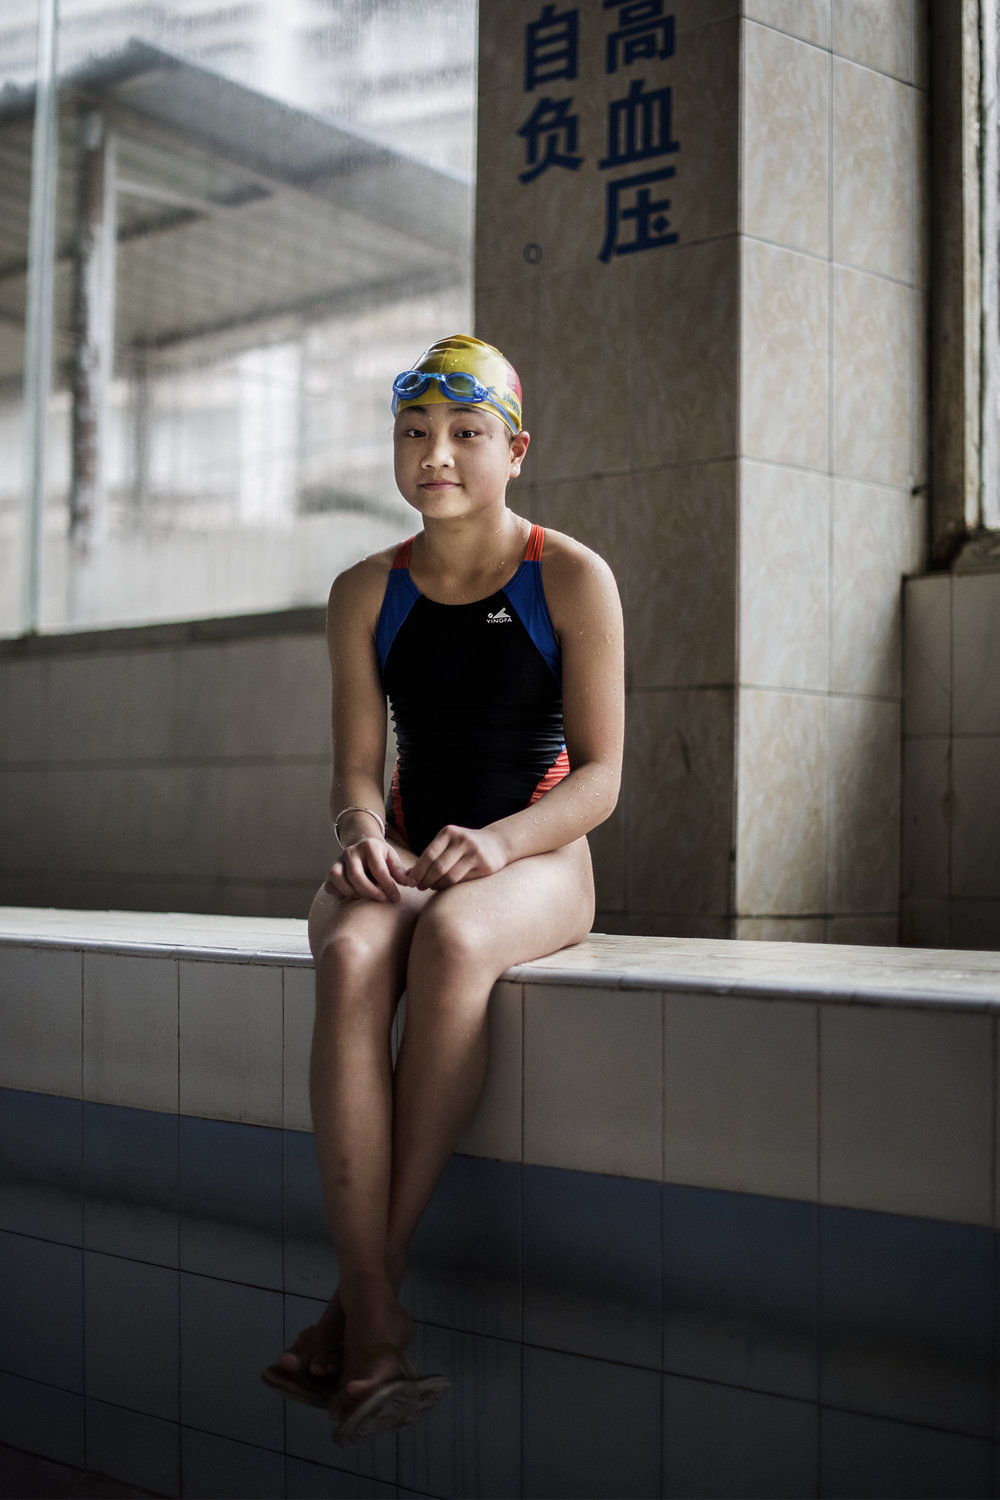 She has just finished one hour of intense training. Like a fish out of water her body shivers on the cold tiles. She closes her eyes and takes a deep breath, opens them and smiles calmly. Zou Jing (12) has attended South of the Clouds Swimming Club for one year.